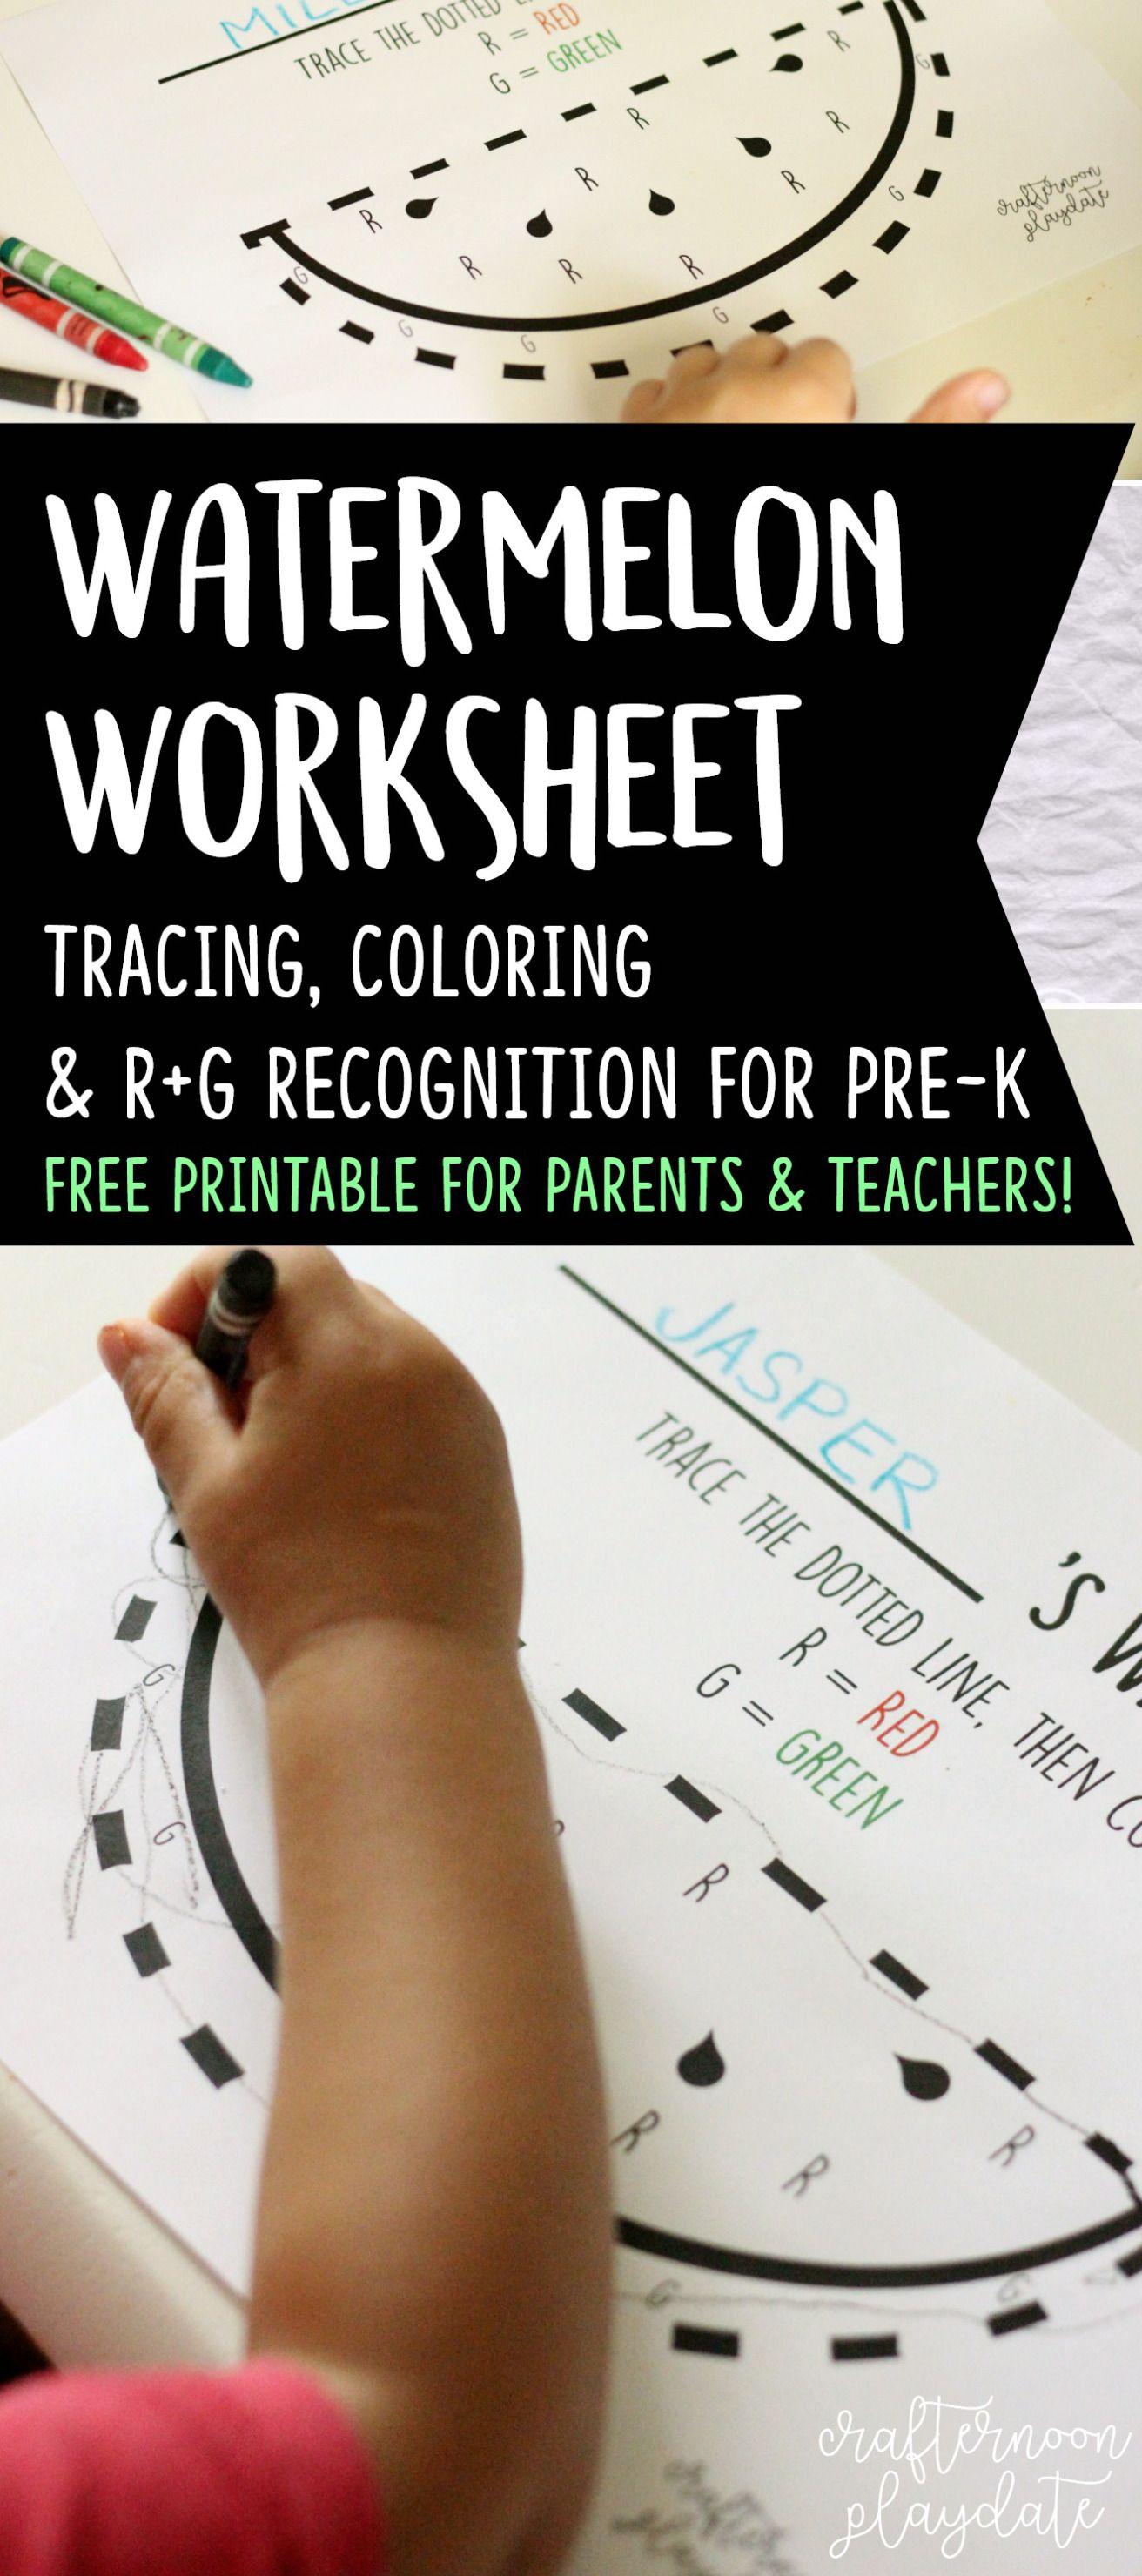 Summer Treats Watermelon Worksheet Free Printable